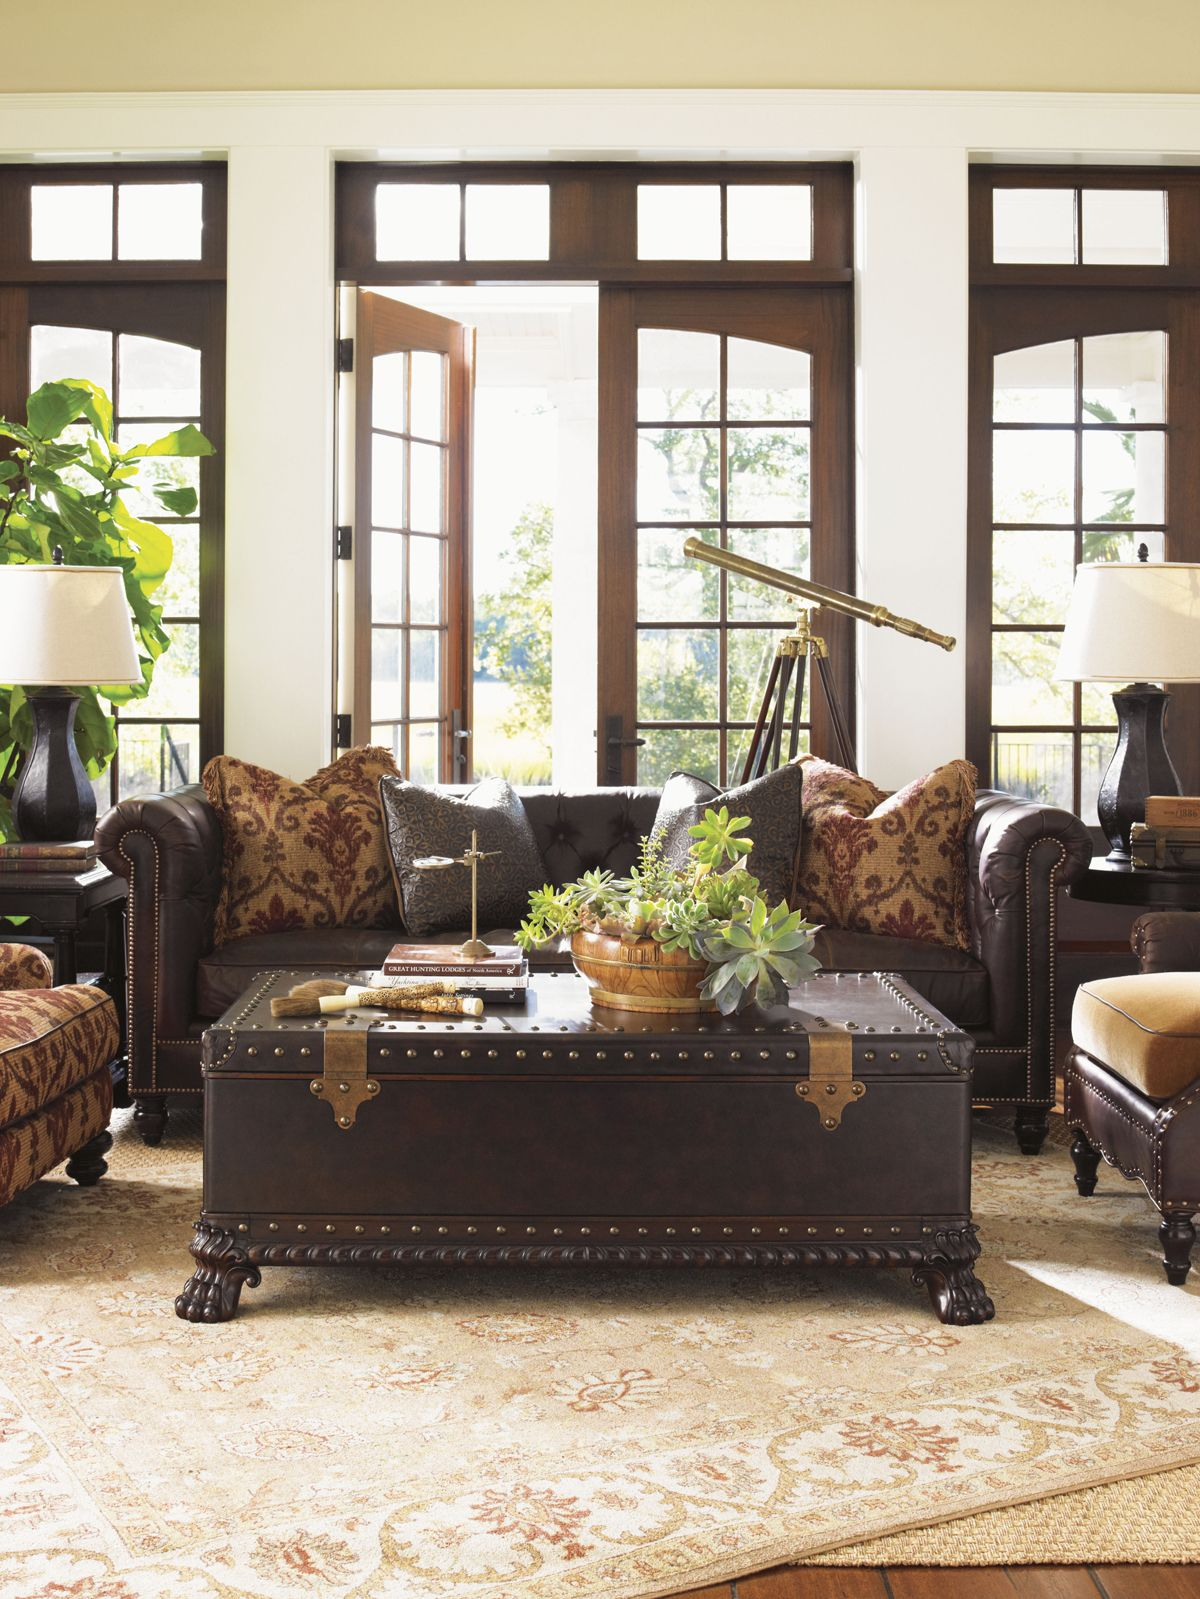 Island Traditions Manchester Leather Sofa British Colonial Decor Home Living Room Furniture Store